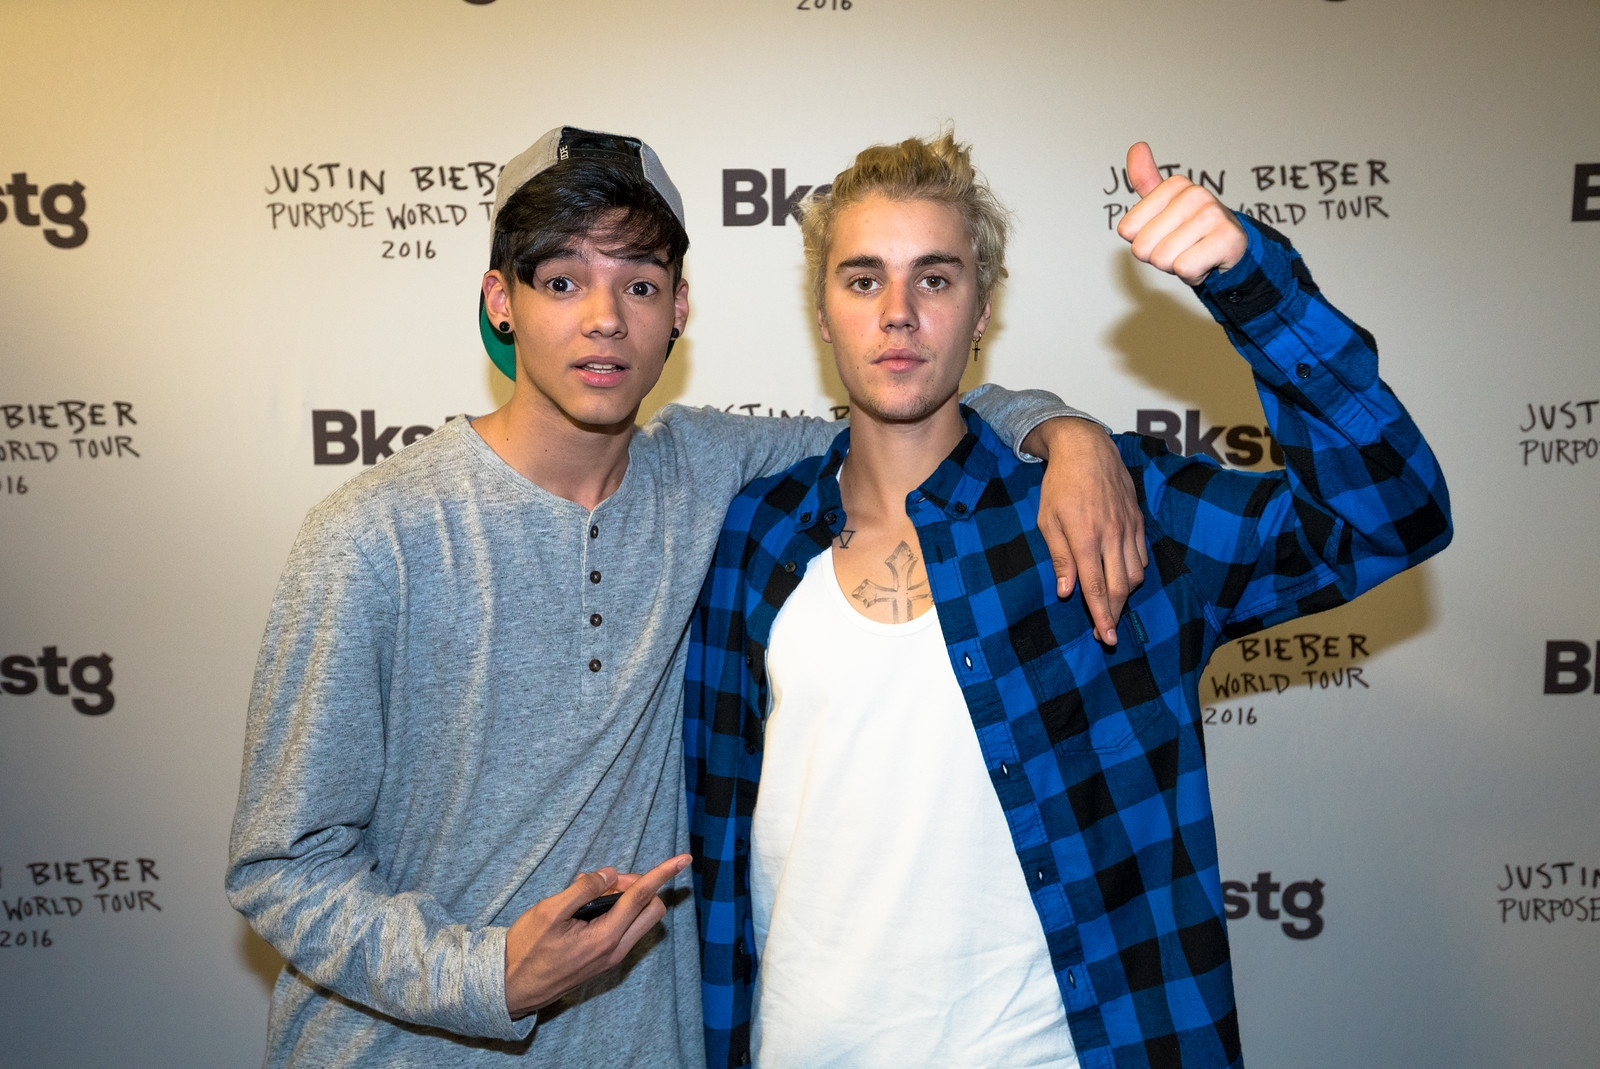 Image justin bieber sacramento purpose tour meet greetg justin bieber sacramento purpose tour meet greetg m4hsunfo